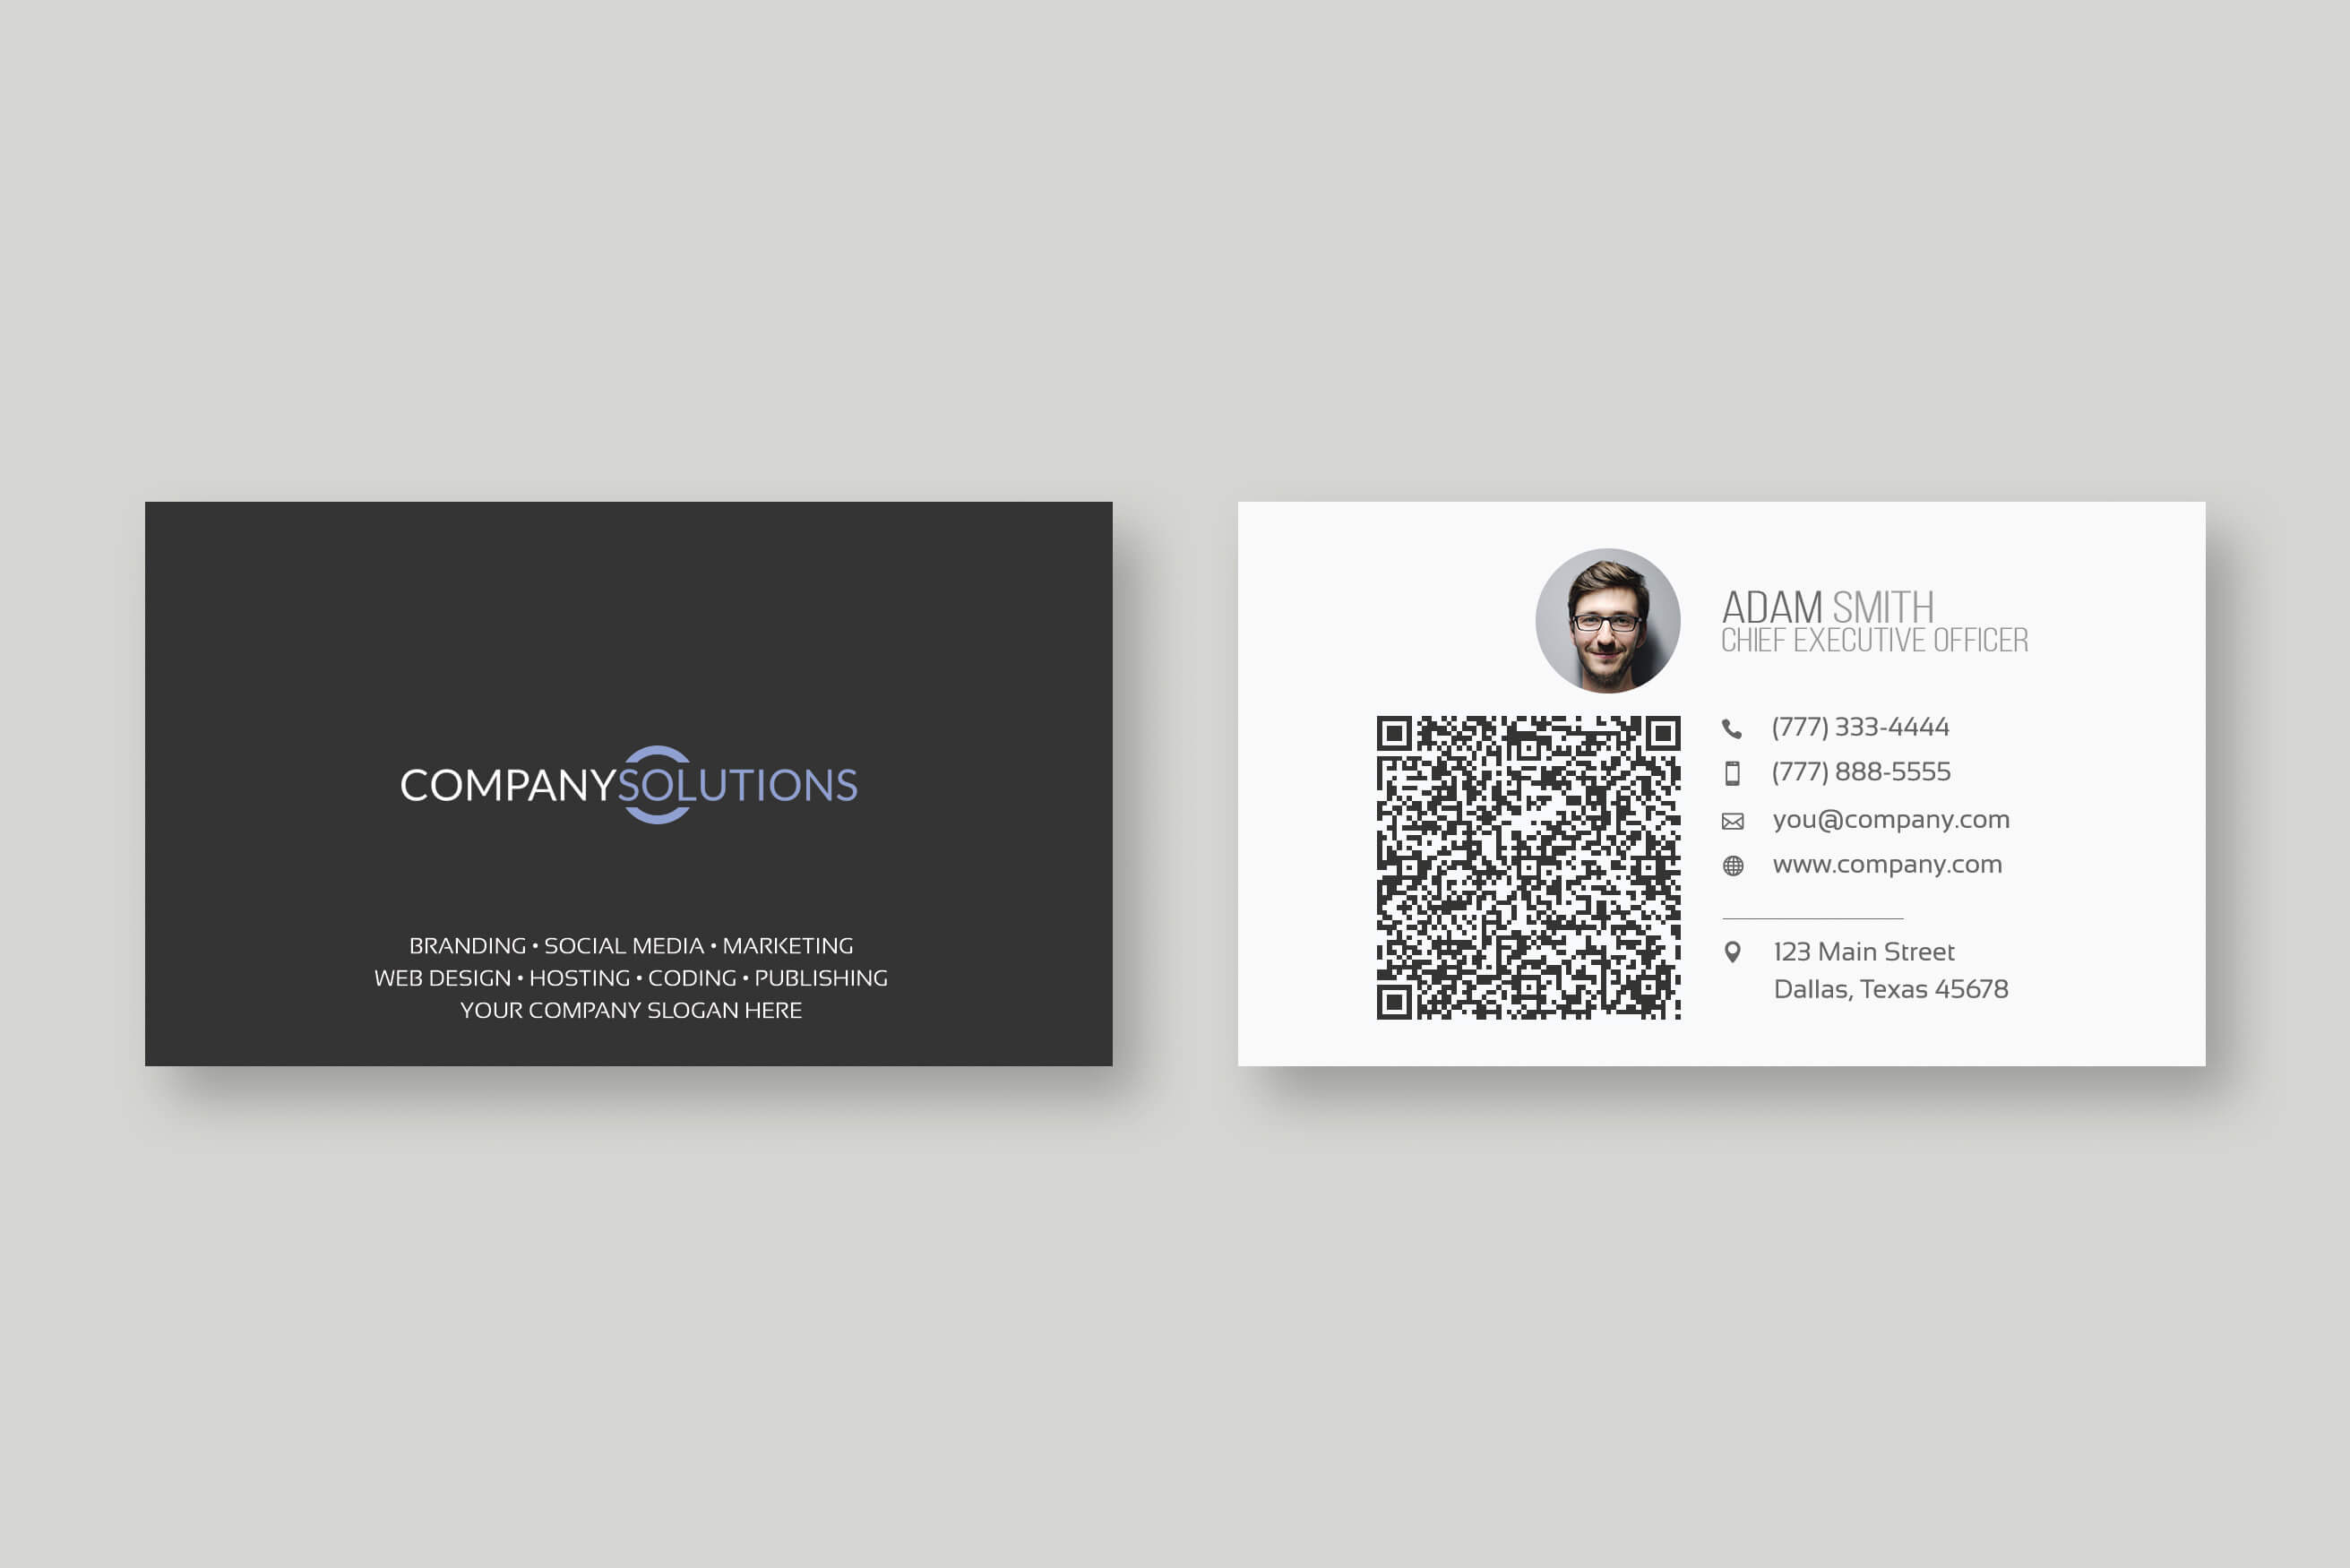 Modern Qr Code Business Card Template Throughout Company Business Cards Templates